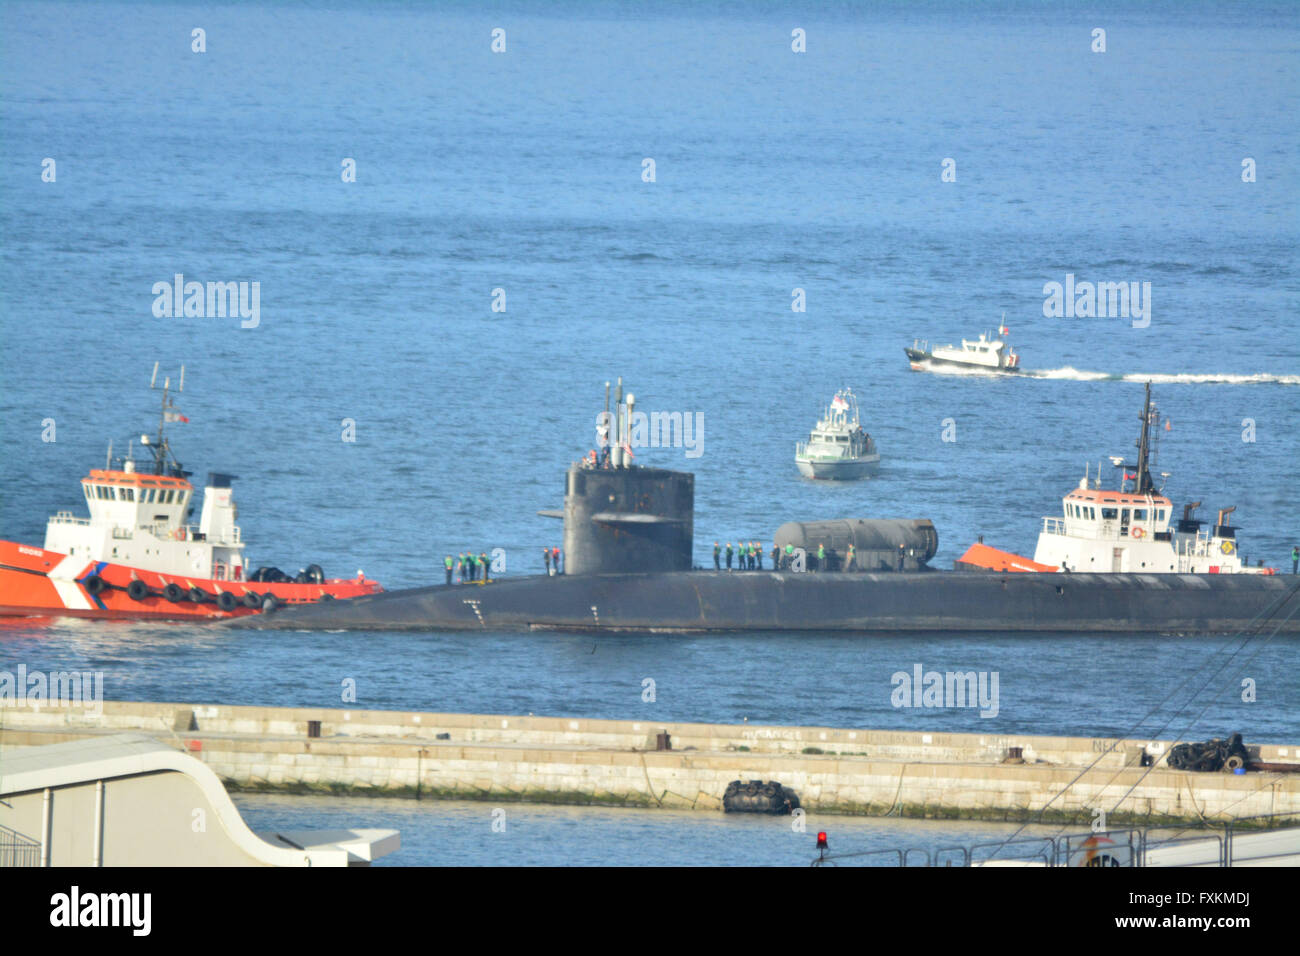 Gibraltar - 16th April 2016 - A US navy Ohio Class nuclear submarine arrived at the British Naval base in Gibraltar. - Stock Image